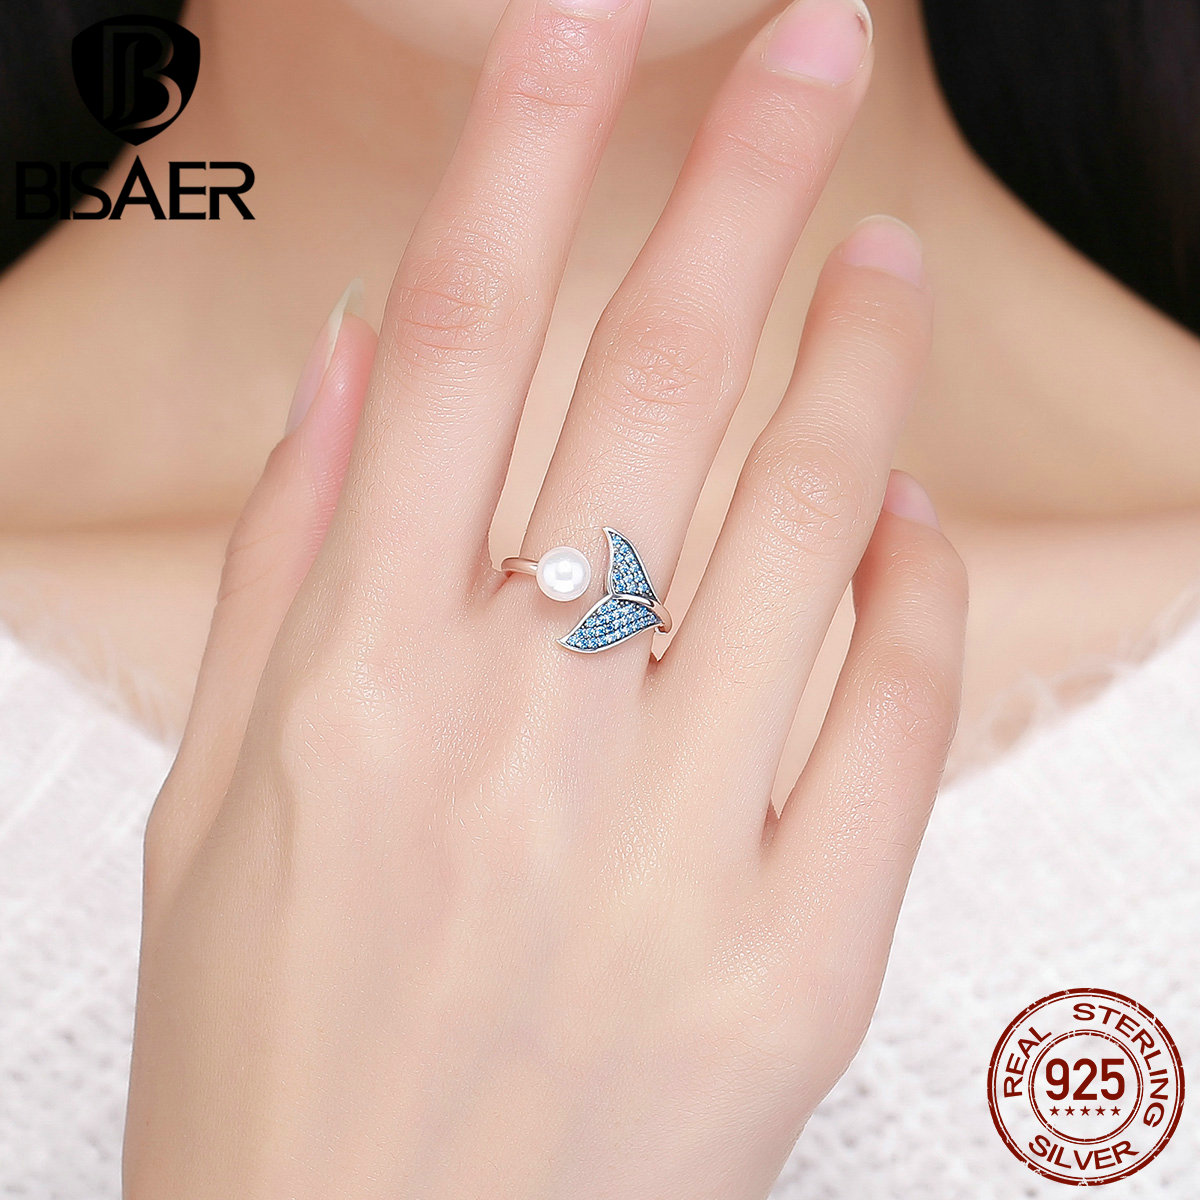 BISAER 100 925 Sterling Silver Female Mermaid Tail Adjustable Finger Rings for Women Wedding Engagement Jewelry BISAER 100% 925 Sterling Silver Female Mermaid Tail Adjustable Finger Rings for Women Wedding Engagement Jewelry S925 GXR286